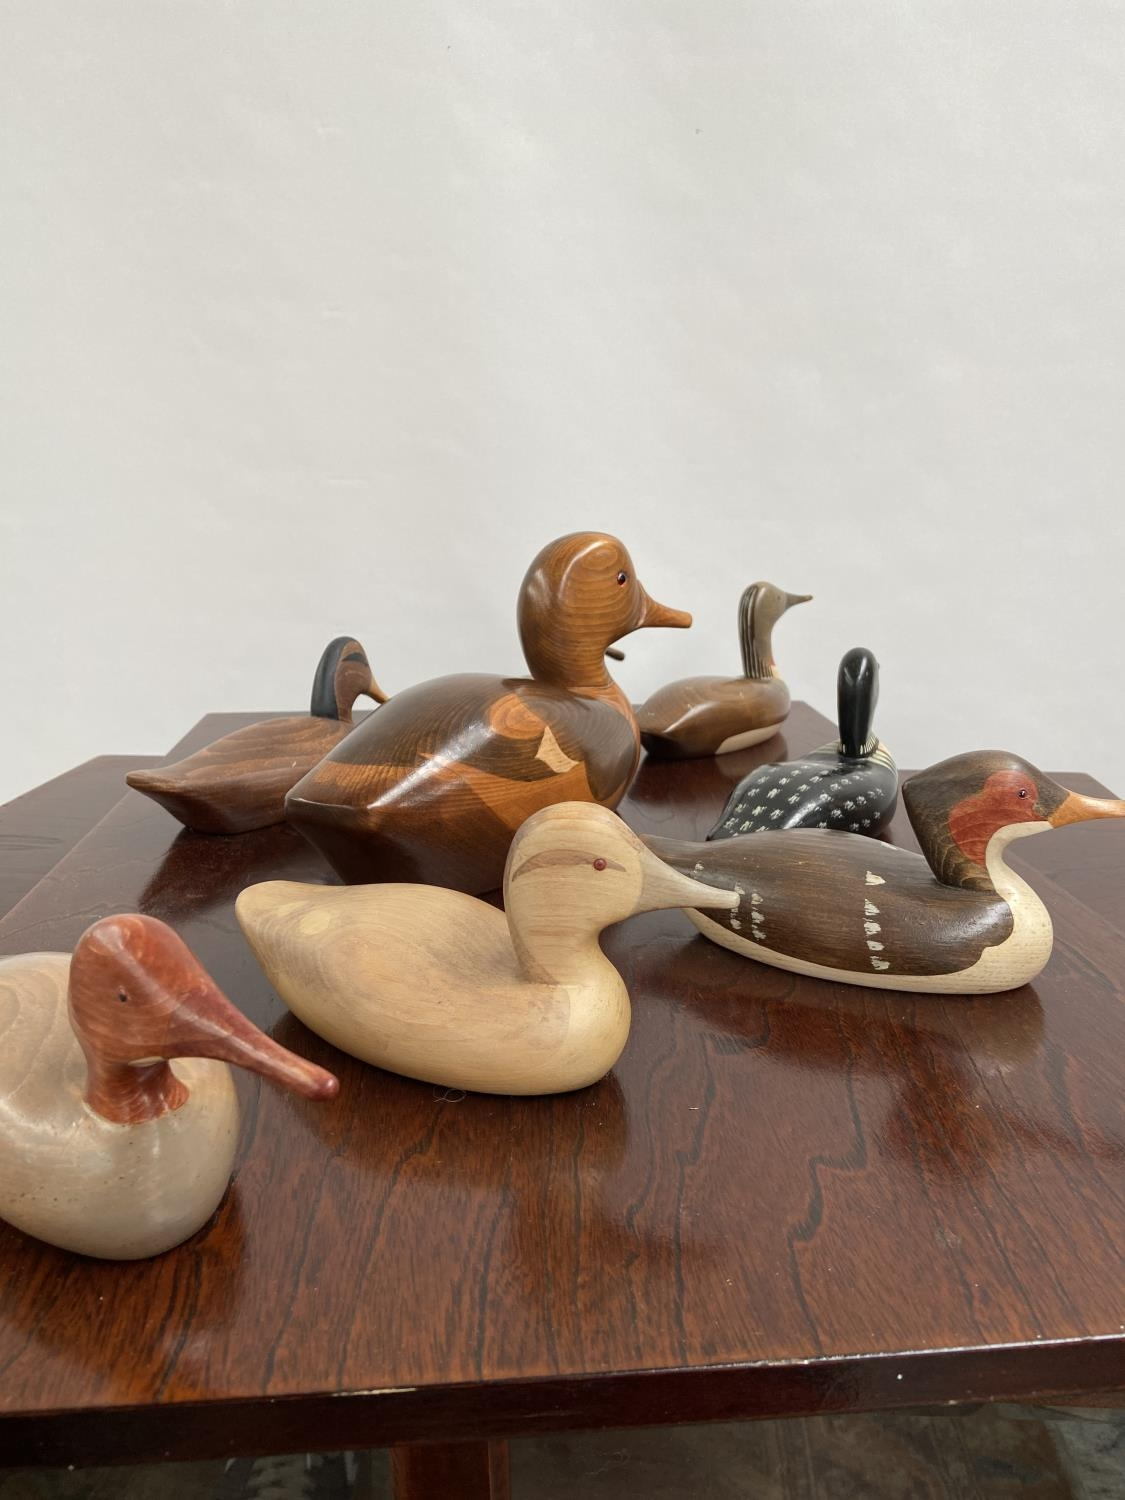 A Collection of hand carved wooden duck decoy sculptures by Jim Harkness. - Image 3 of 11